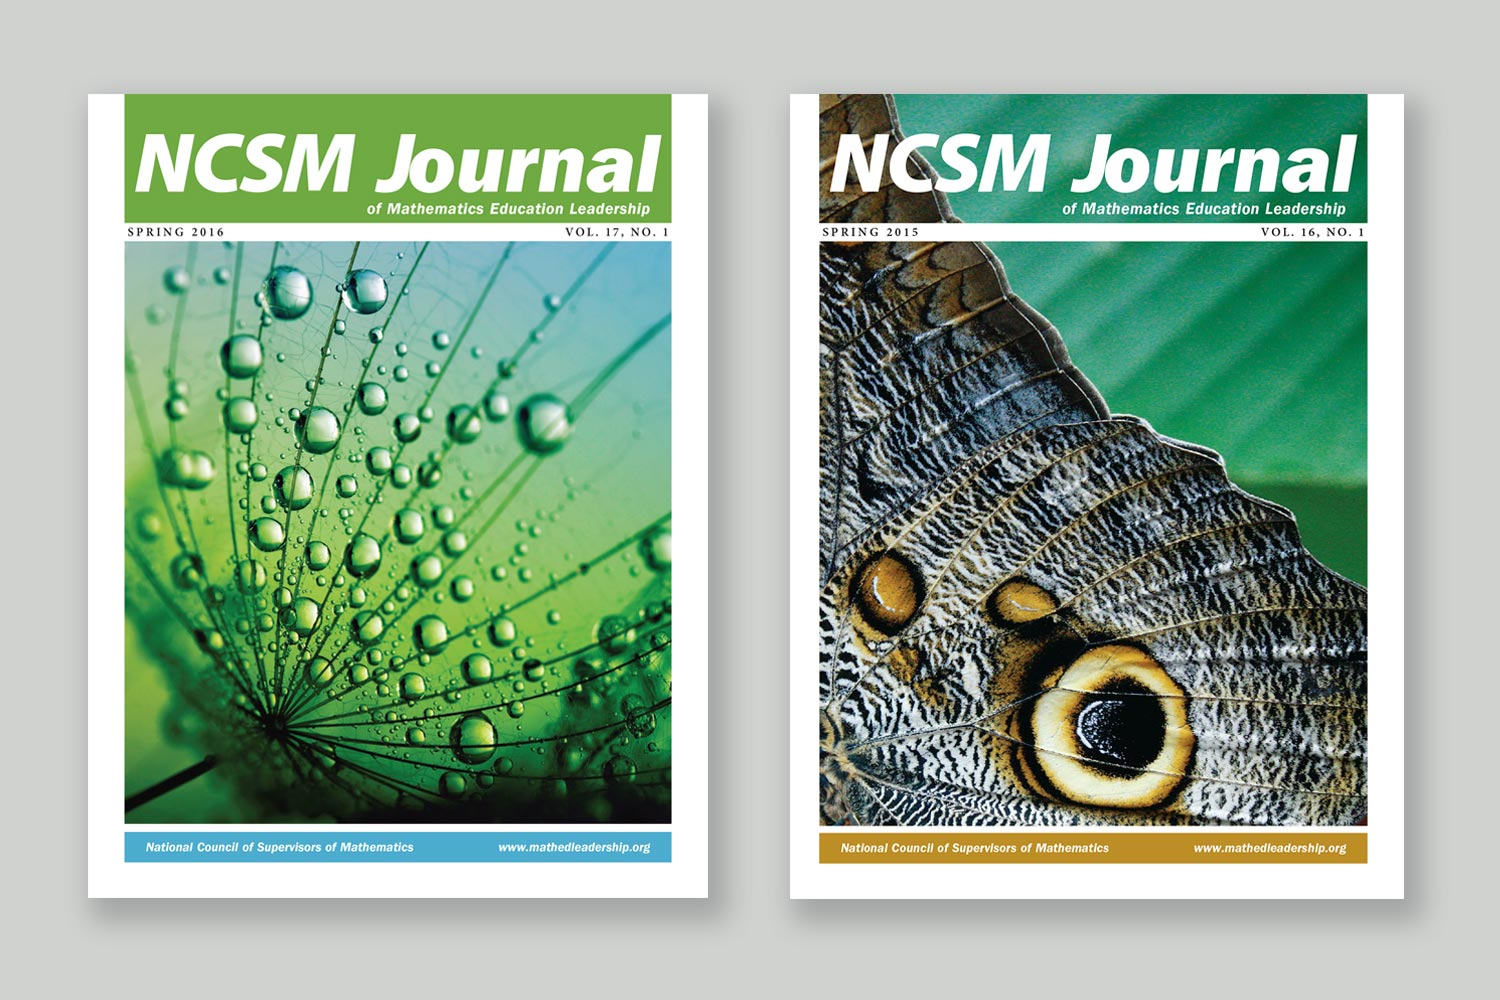 Bonnie Katz Design, NCSM Journal covers 2015-2016